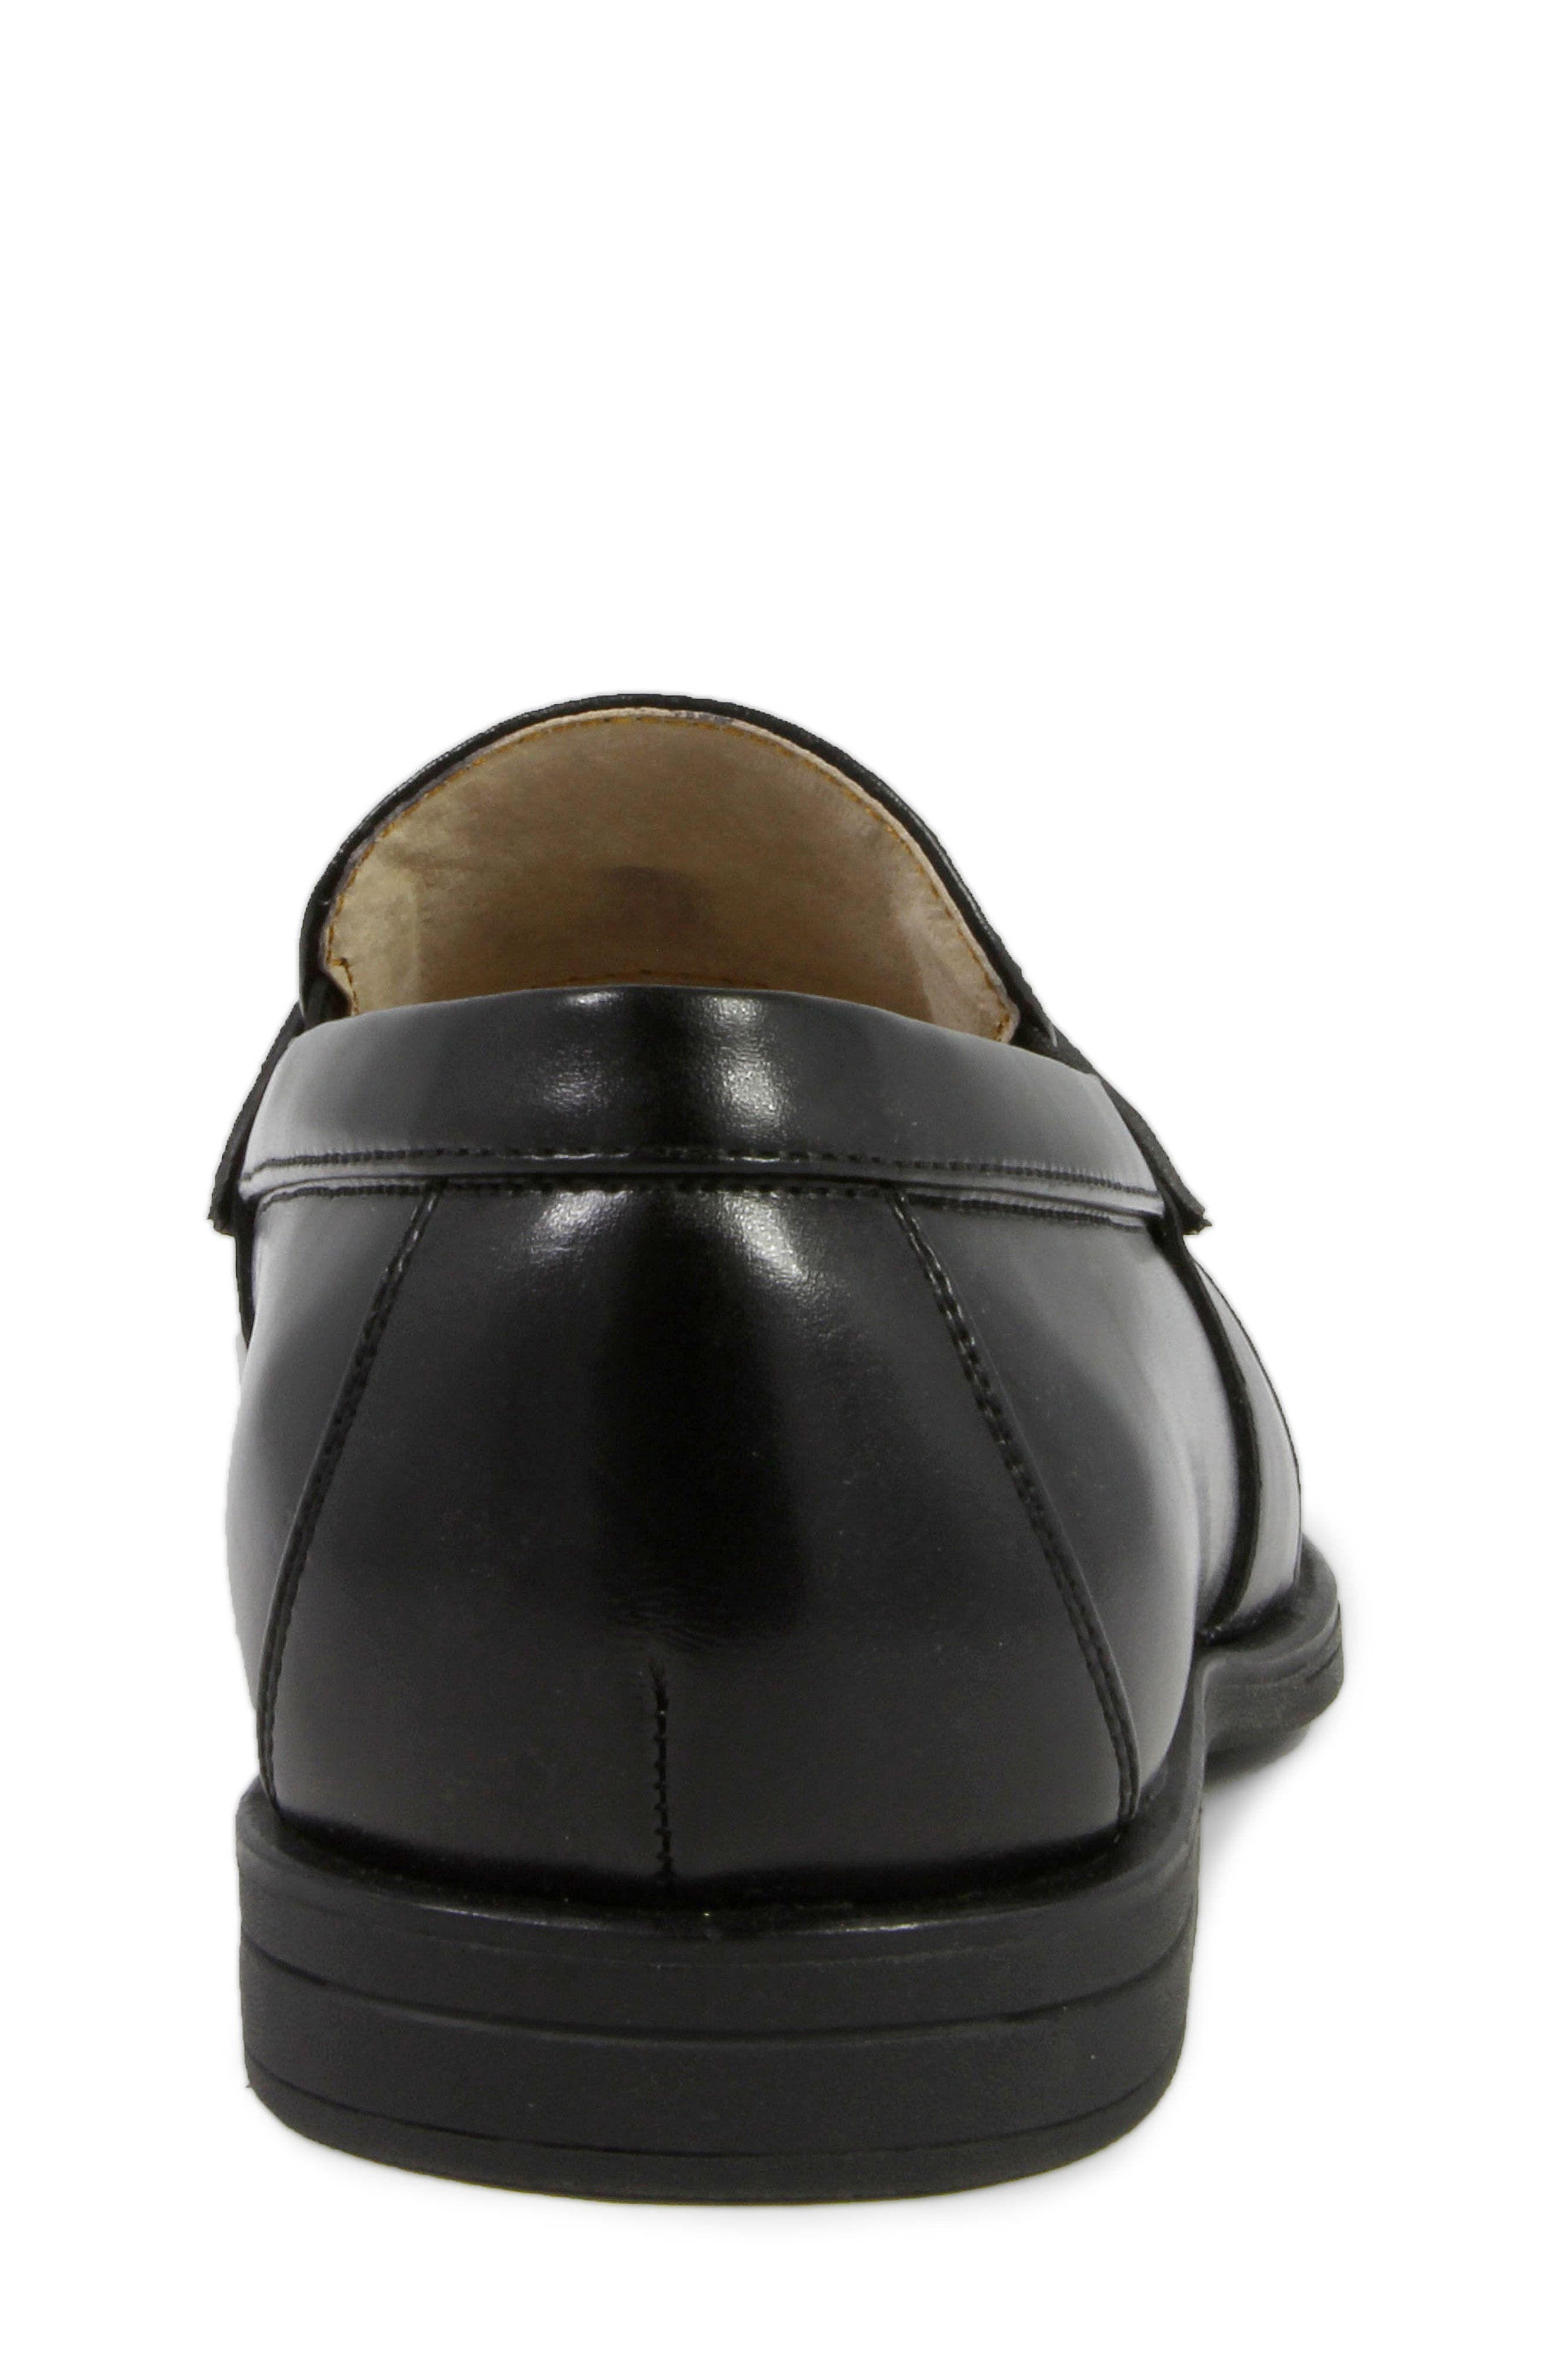 'Reveal' Penny Loafer,                             Alternate thumbnail 8, color,                             BLACK